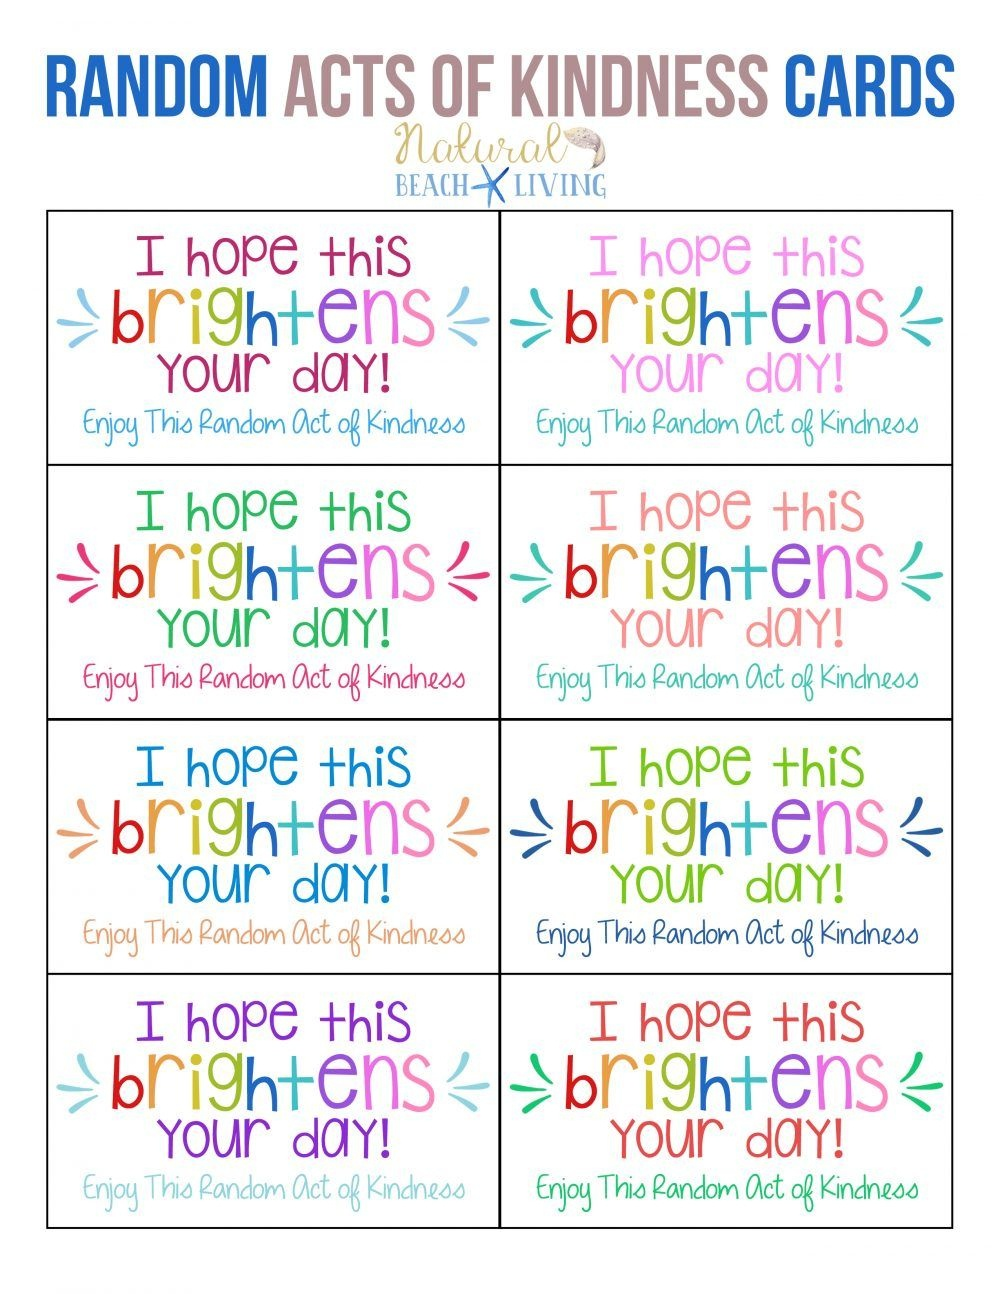 The Best Random Acts Of Kindness Printable Cards Free   Girl Scouts - Free Printable Kindness Cards